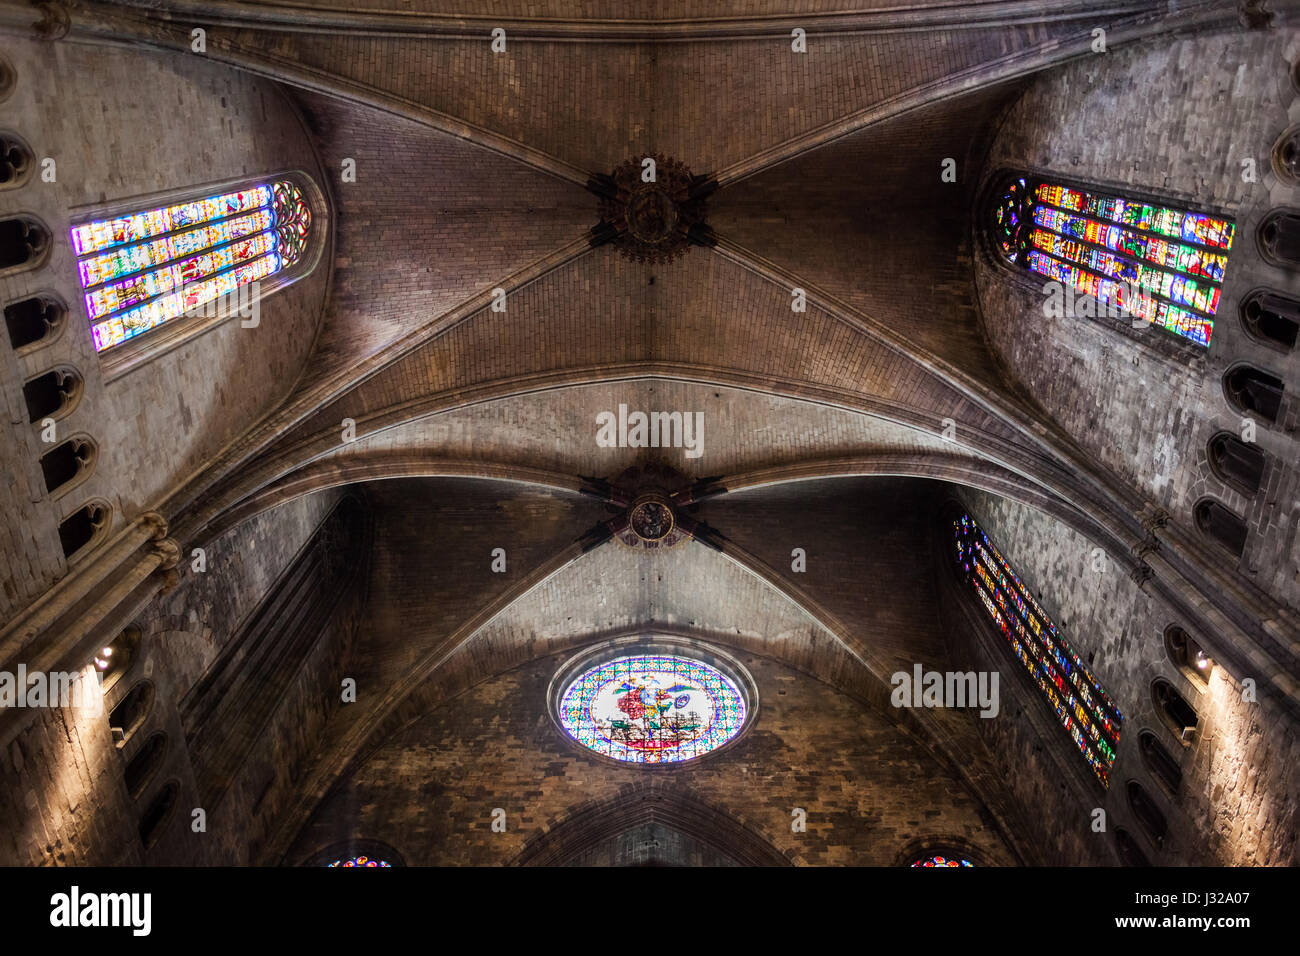 Gothic Groin Vault of Girona Cathedral in Gerona, Catalonia, Spain - Stock Image